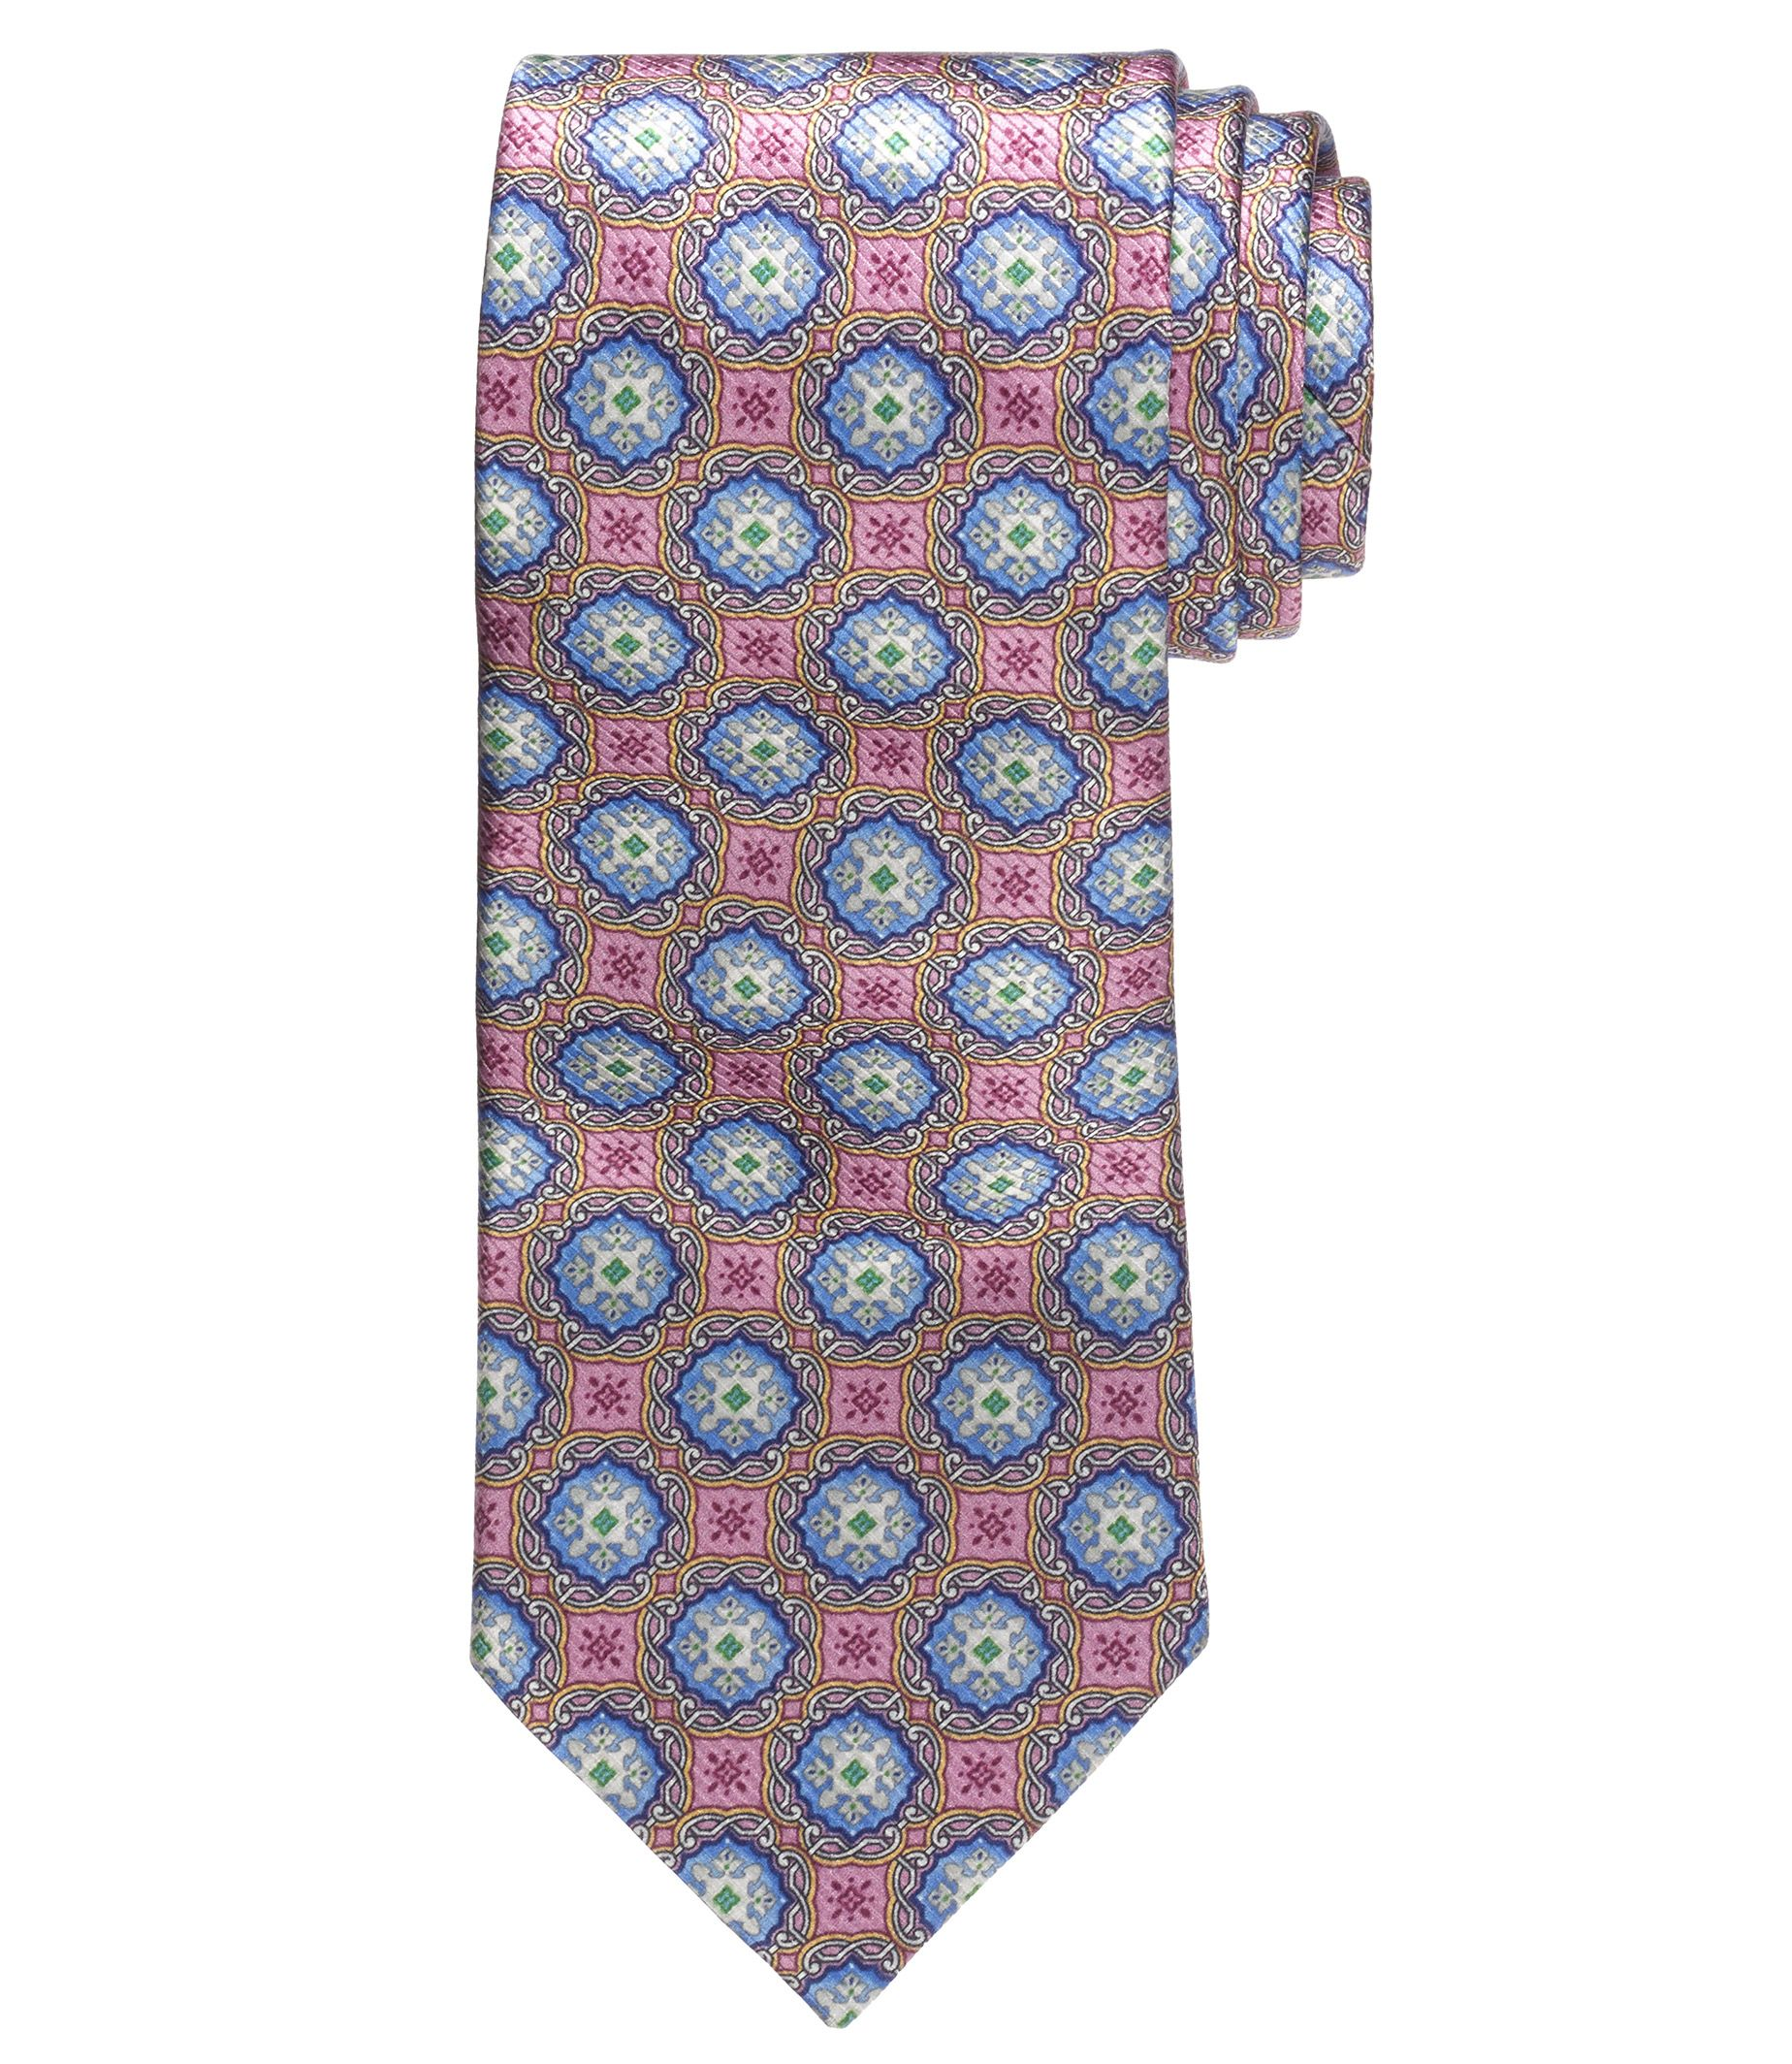 Signiture Gold Collection Medallion Print Tie